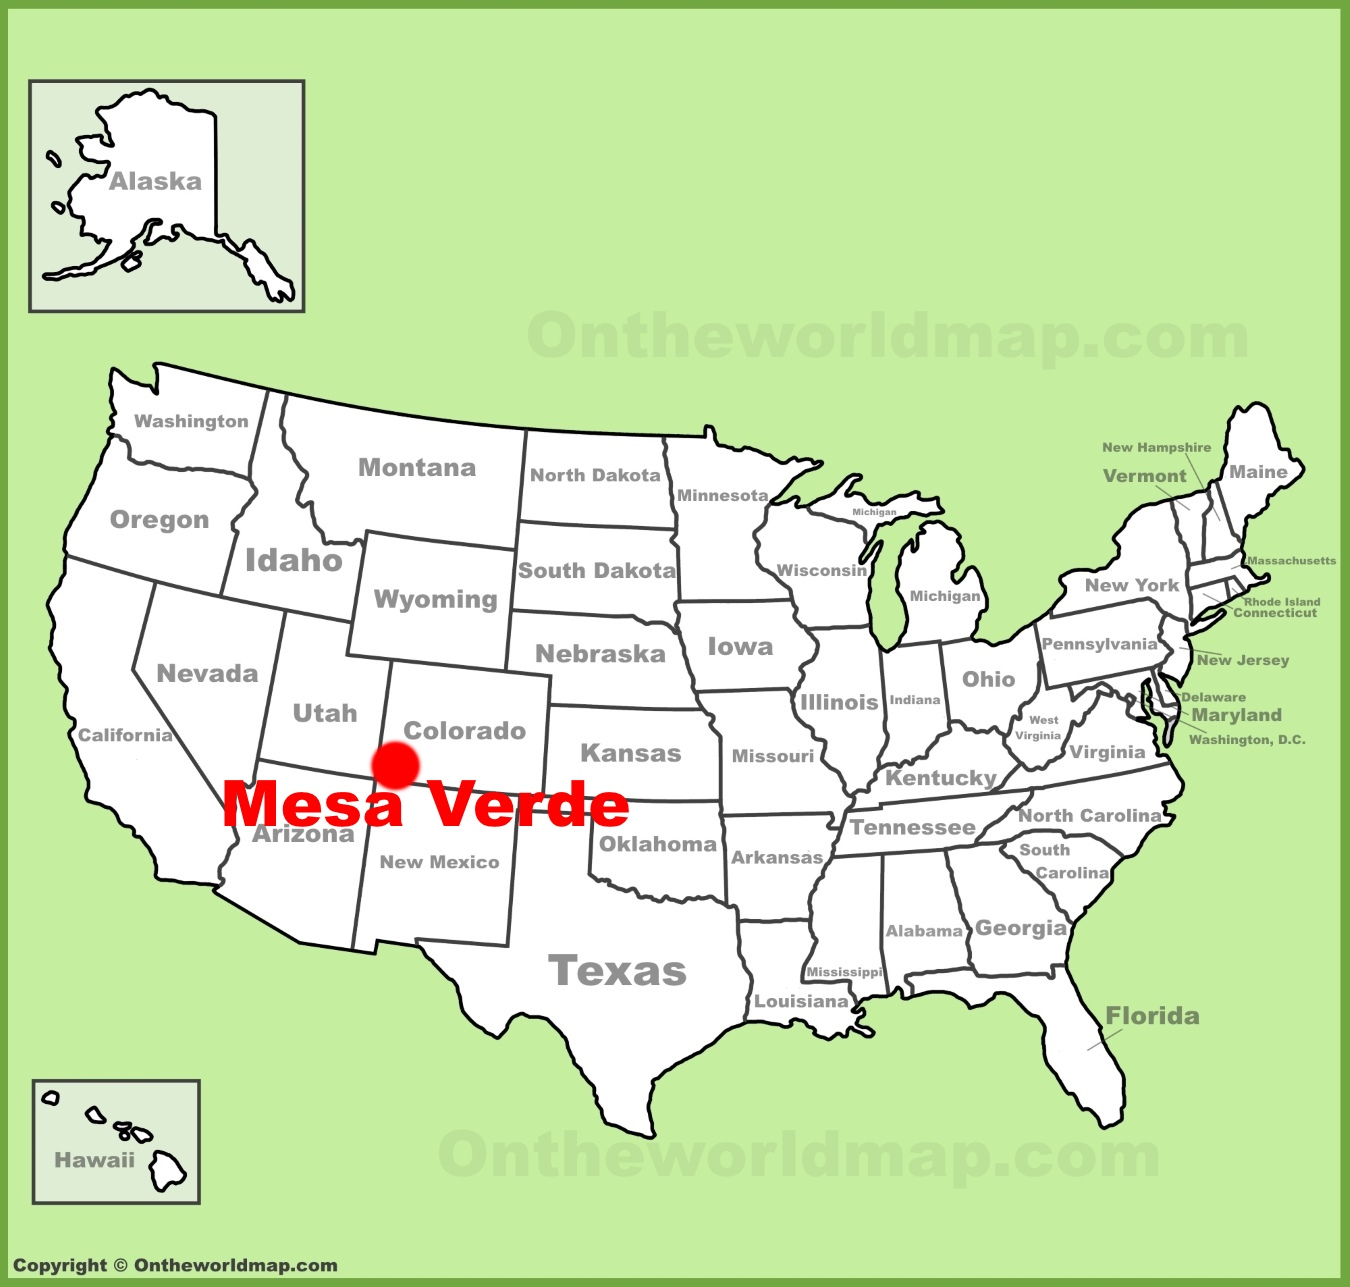 Mesa Verde location on the US Map